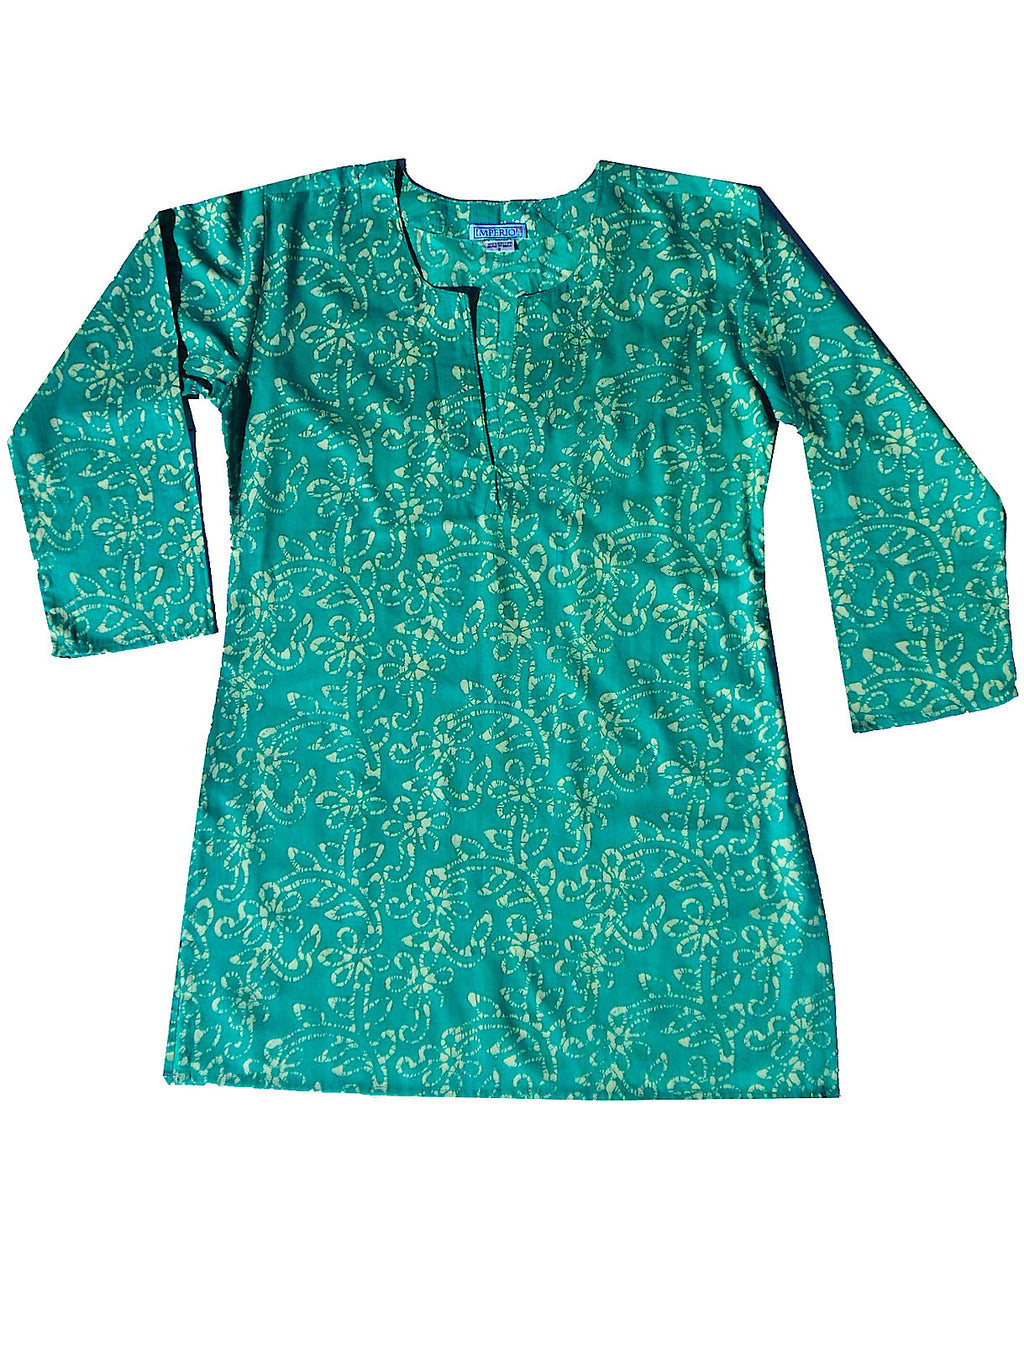 Raja Cotton Tunic Aqua Batik